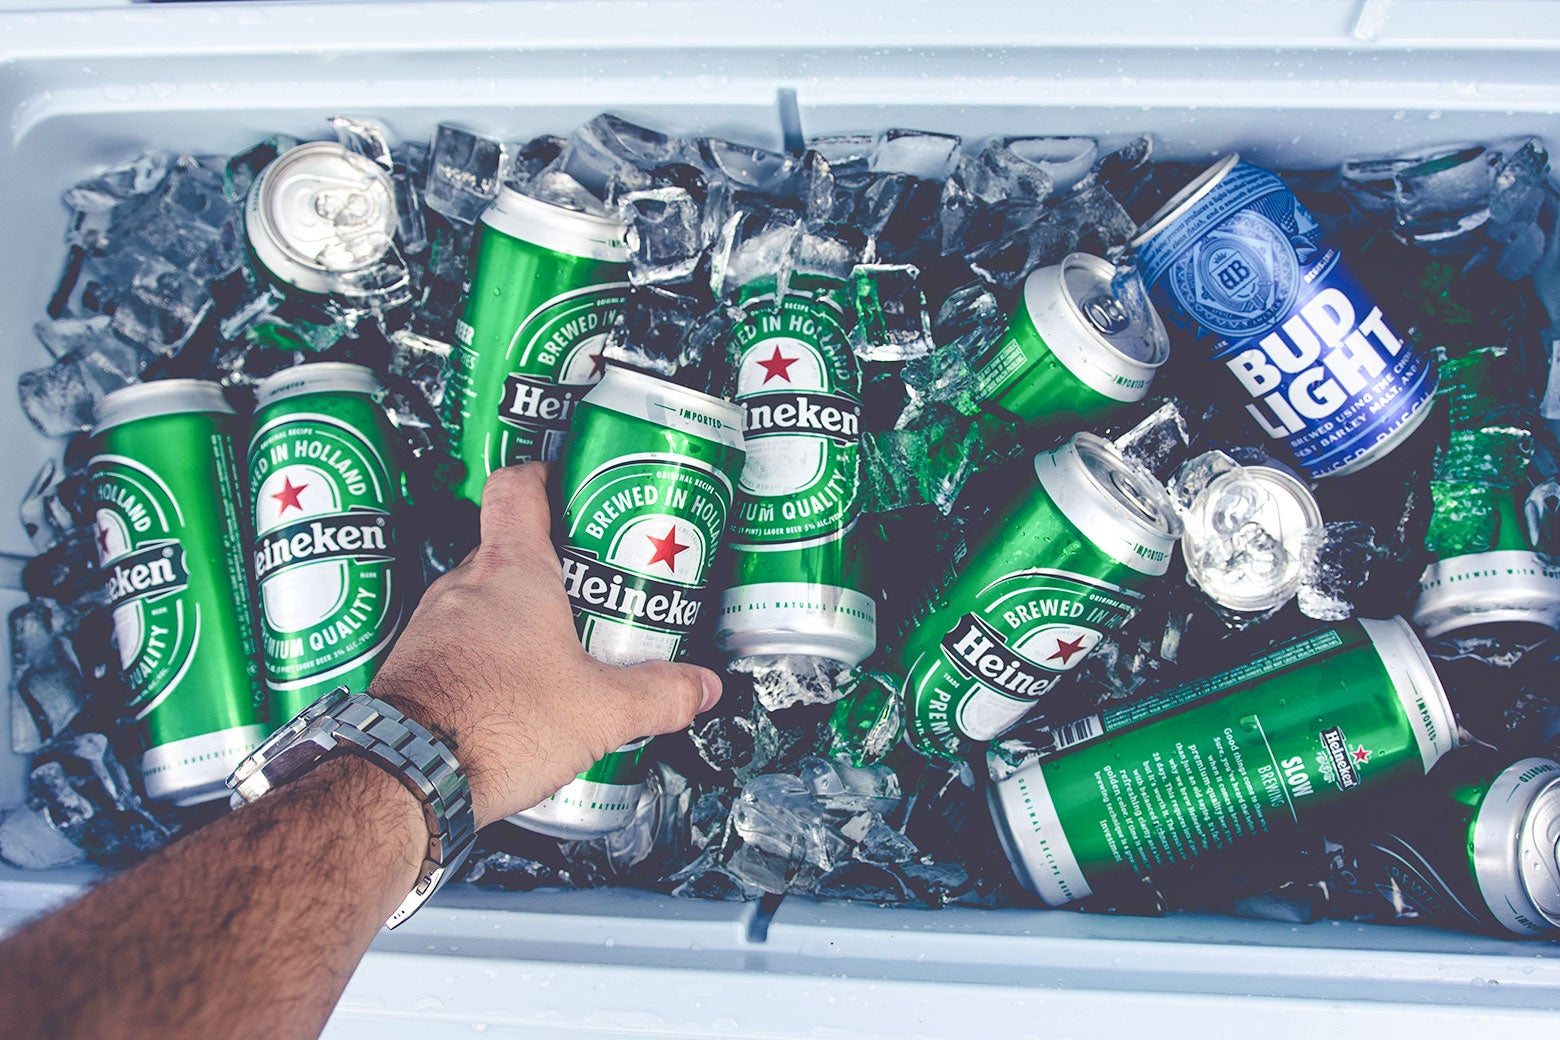 A person reaches into a cooler stocked with beer cans of Heineken and Bud Light.